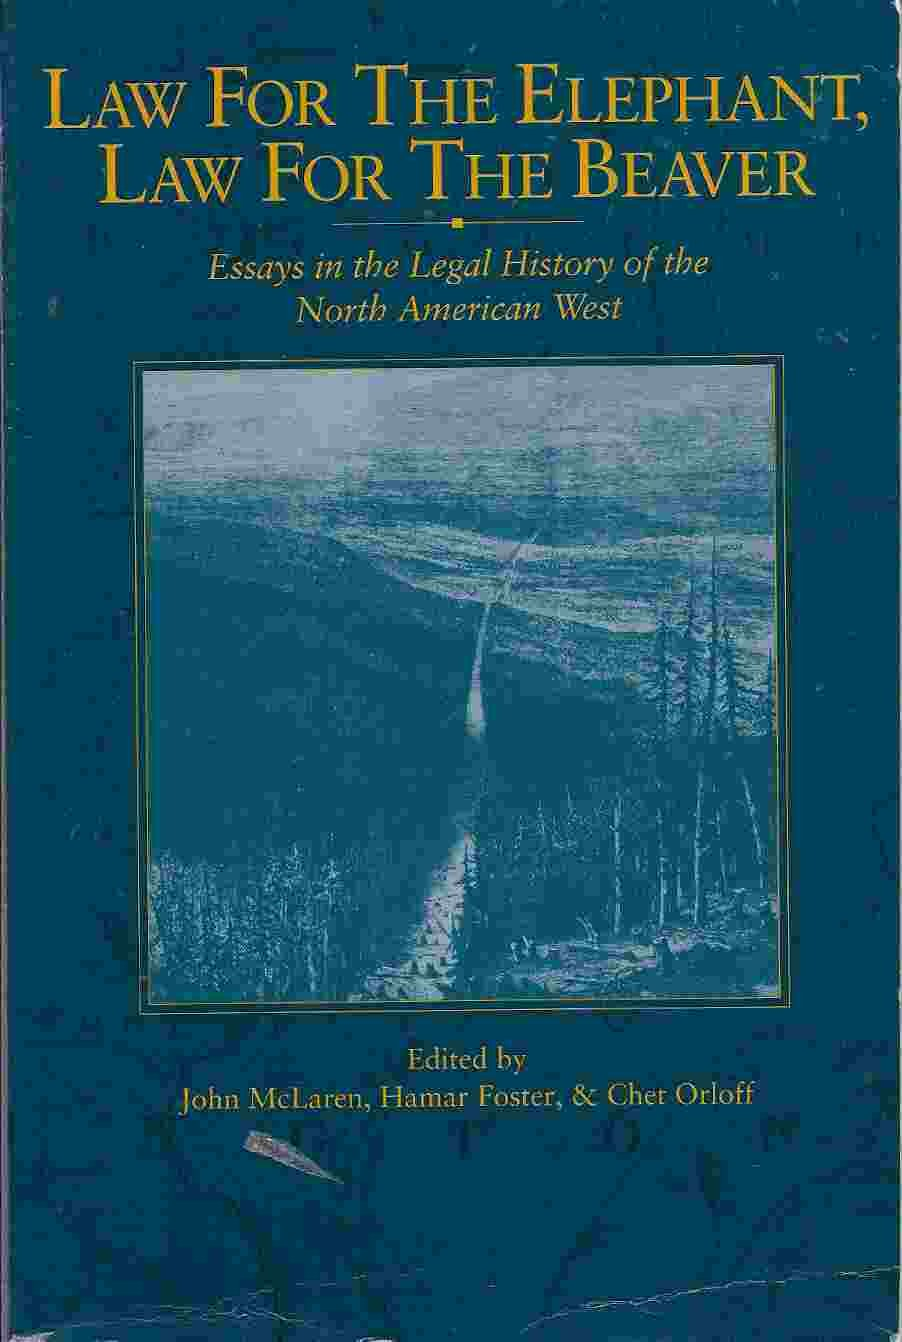 Law for the Elephant, Law for the Beaver: Essays in the Legal History of the North American West (Cpp, 23)